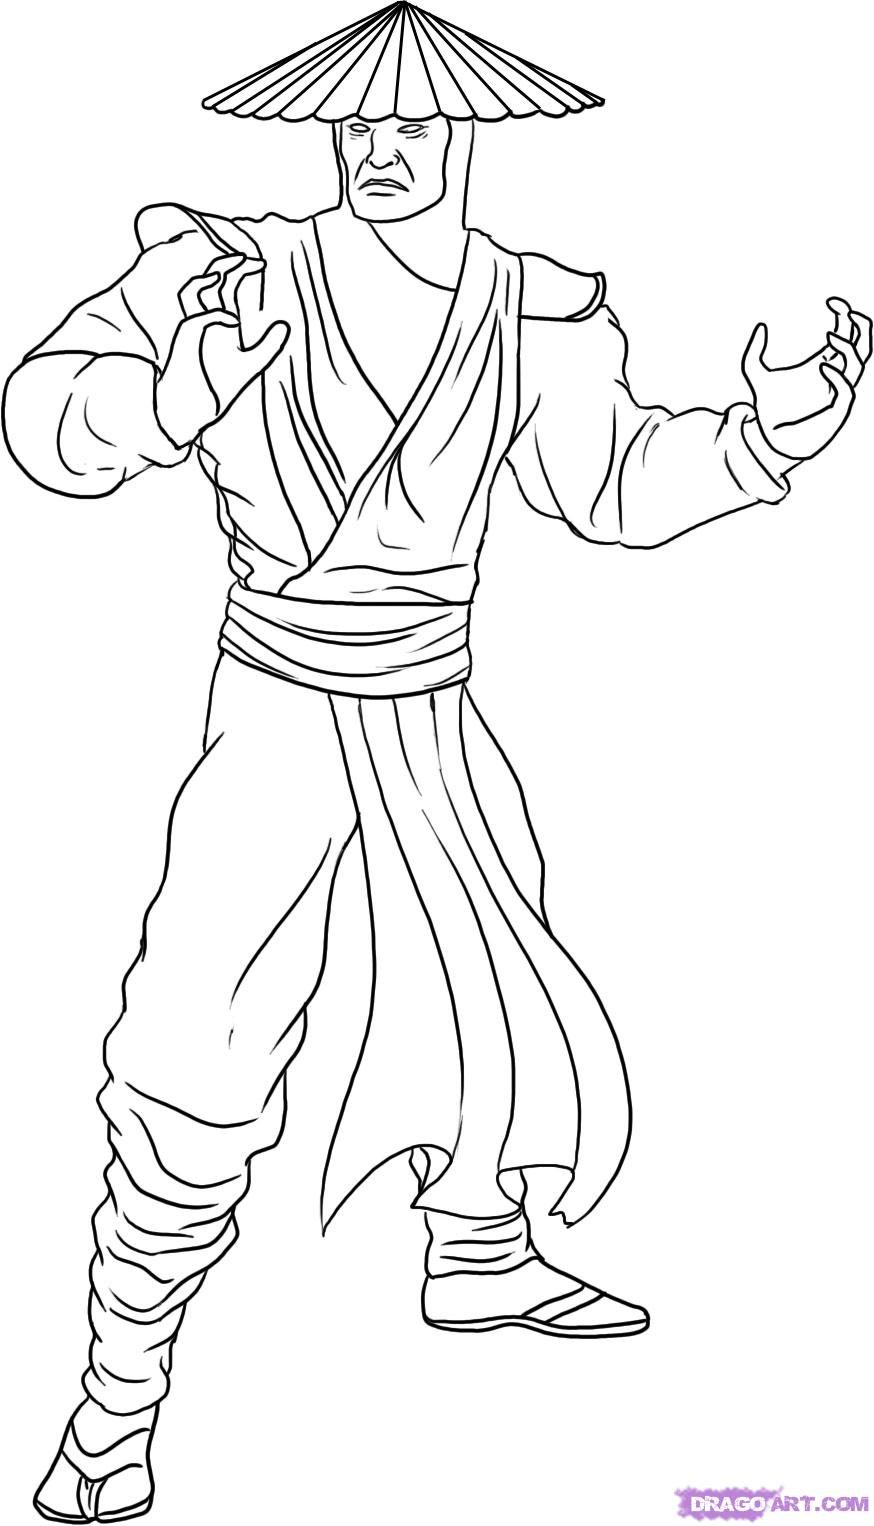 Mortal Kombat Drawings Bing images Coloring pages